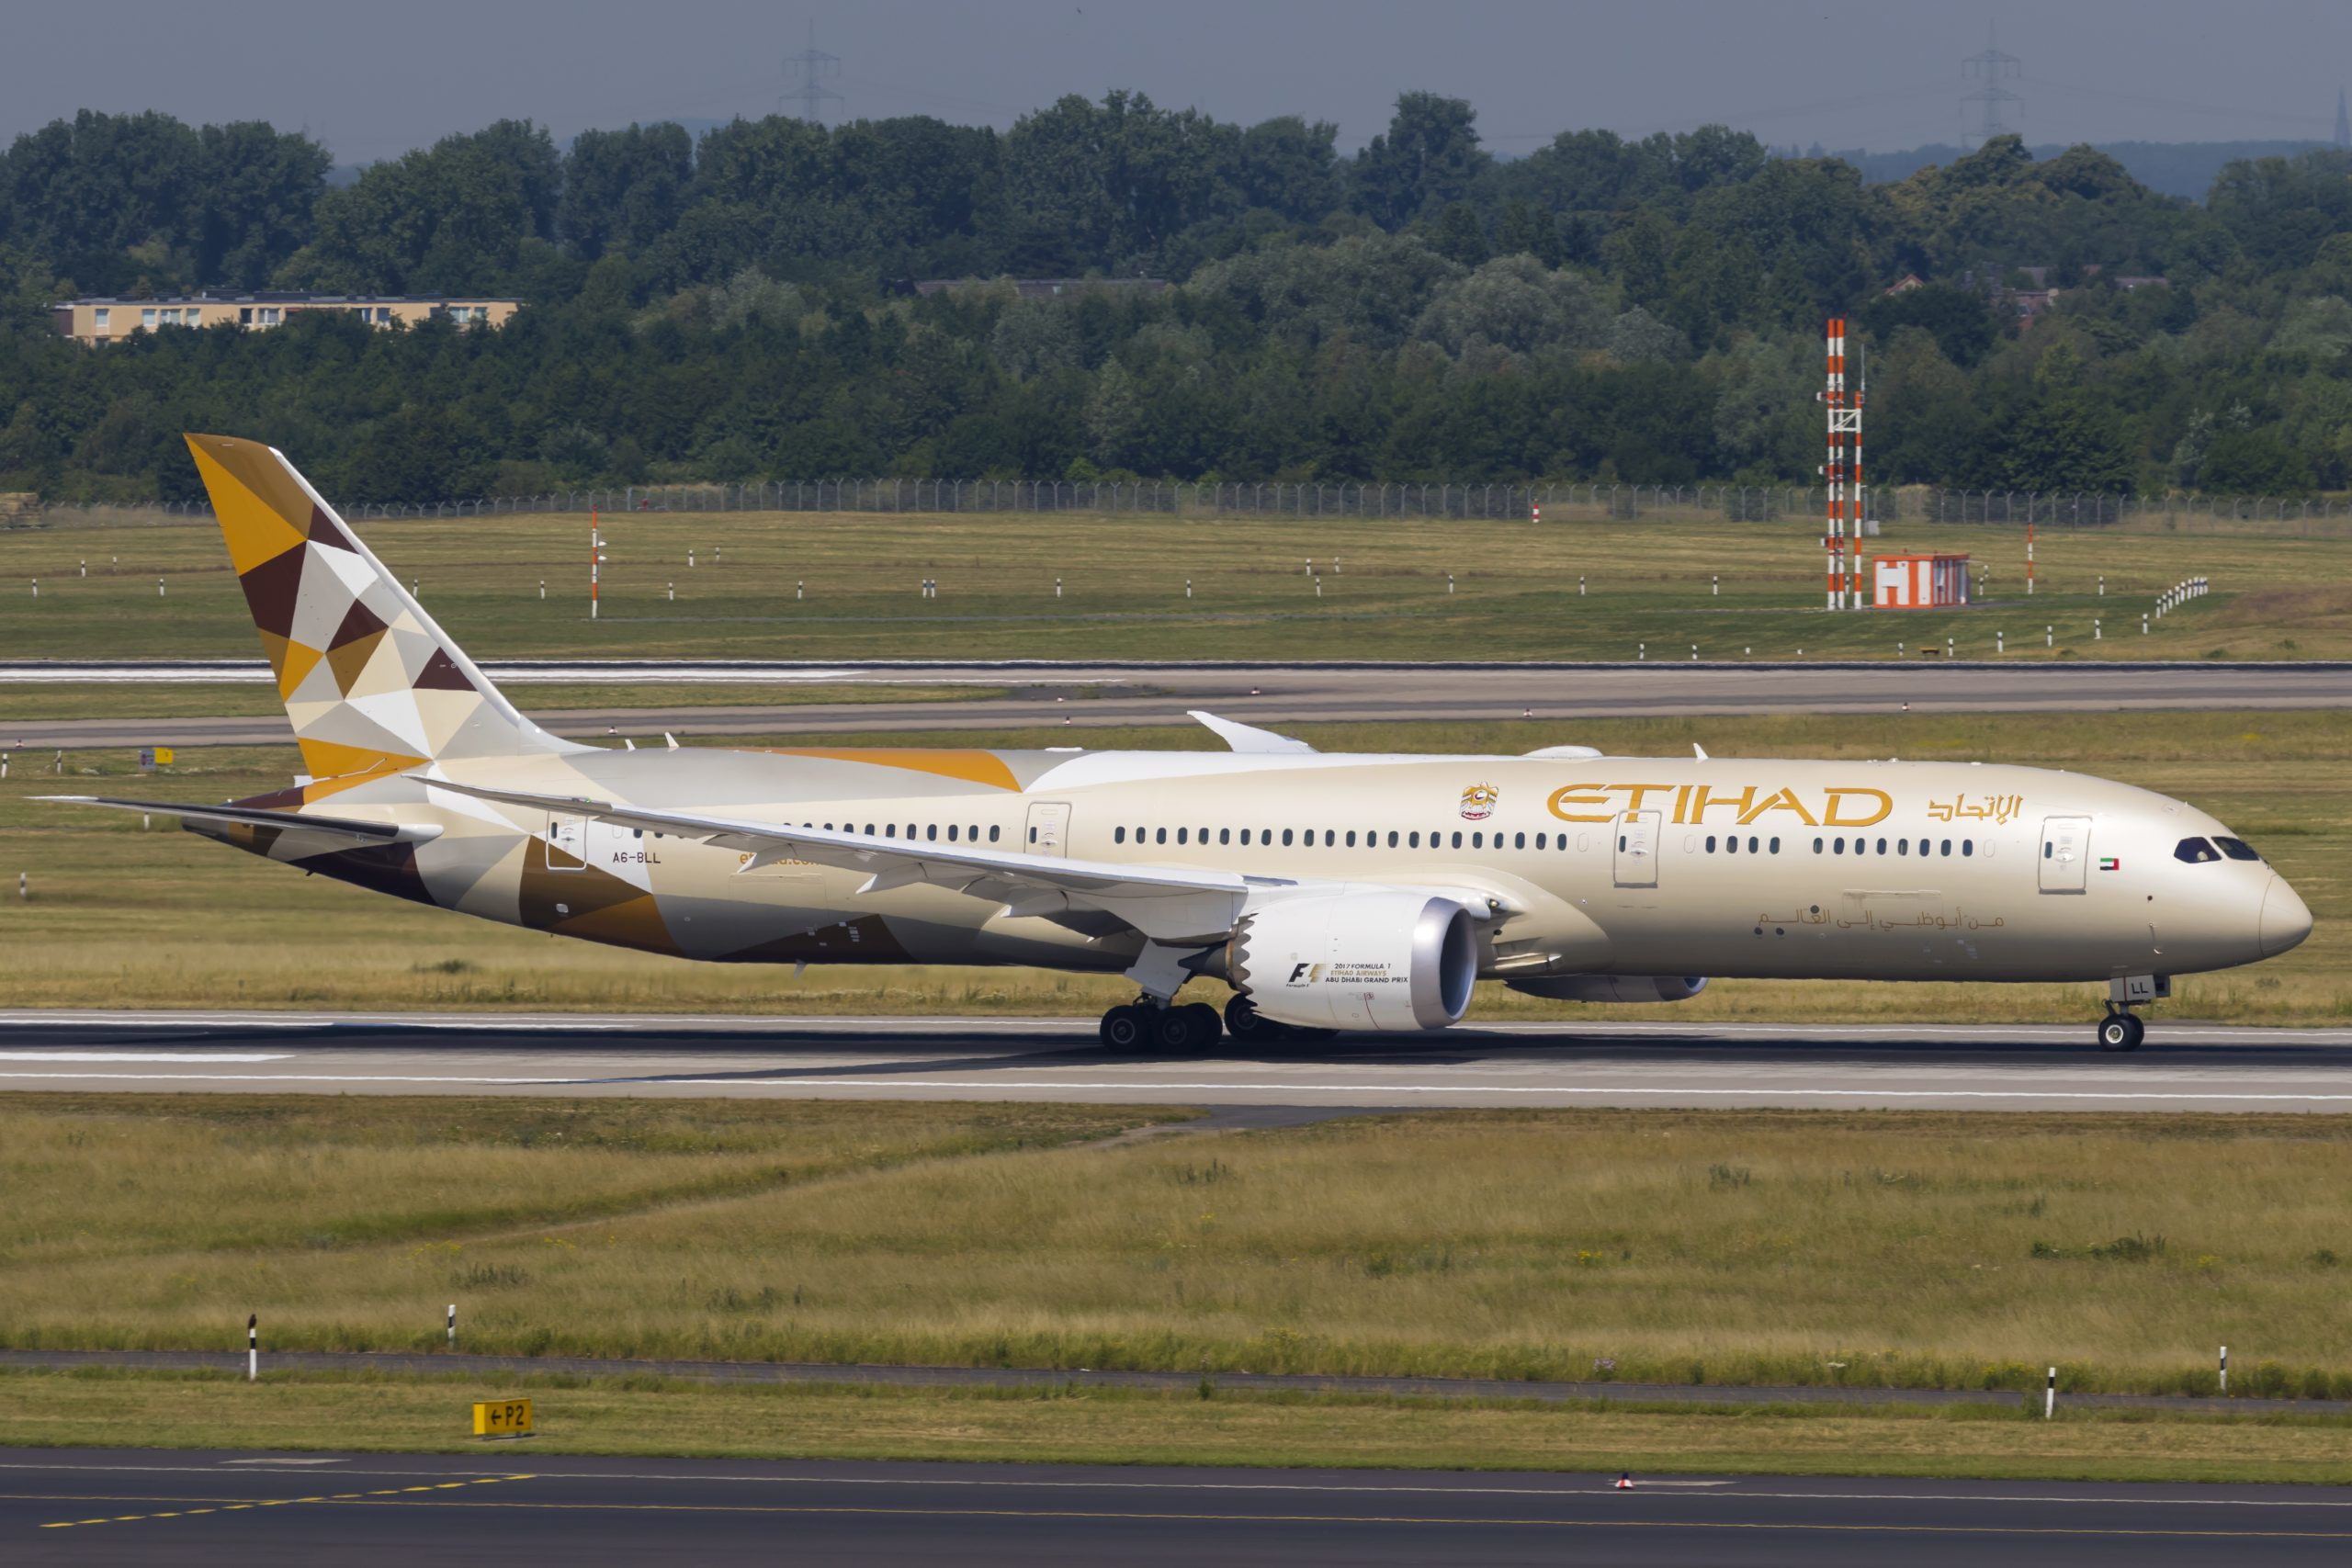 En Boeing 787-9 Dreamliner fra Etihad Airways. Foto: © Thorbjørn Brunander Sund, Danish Aviation Photo